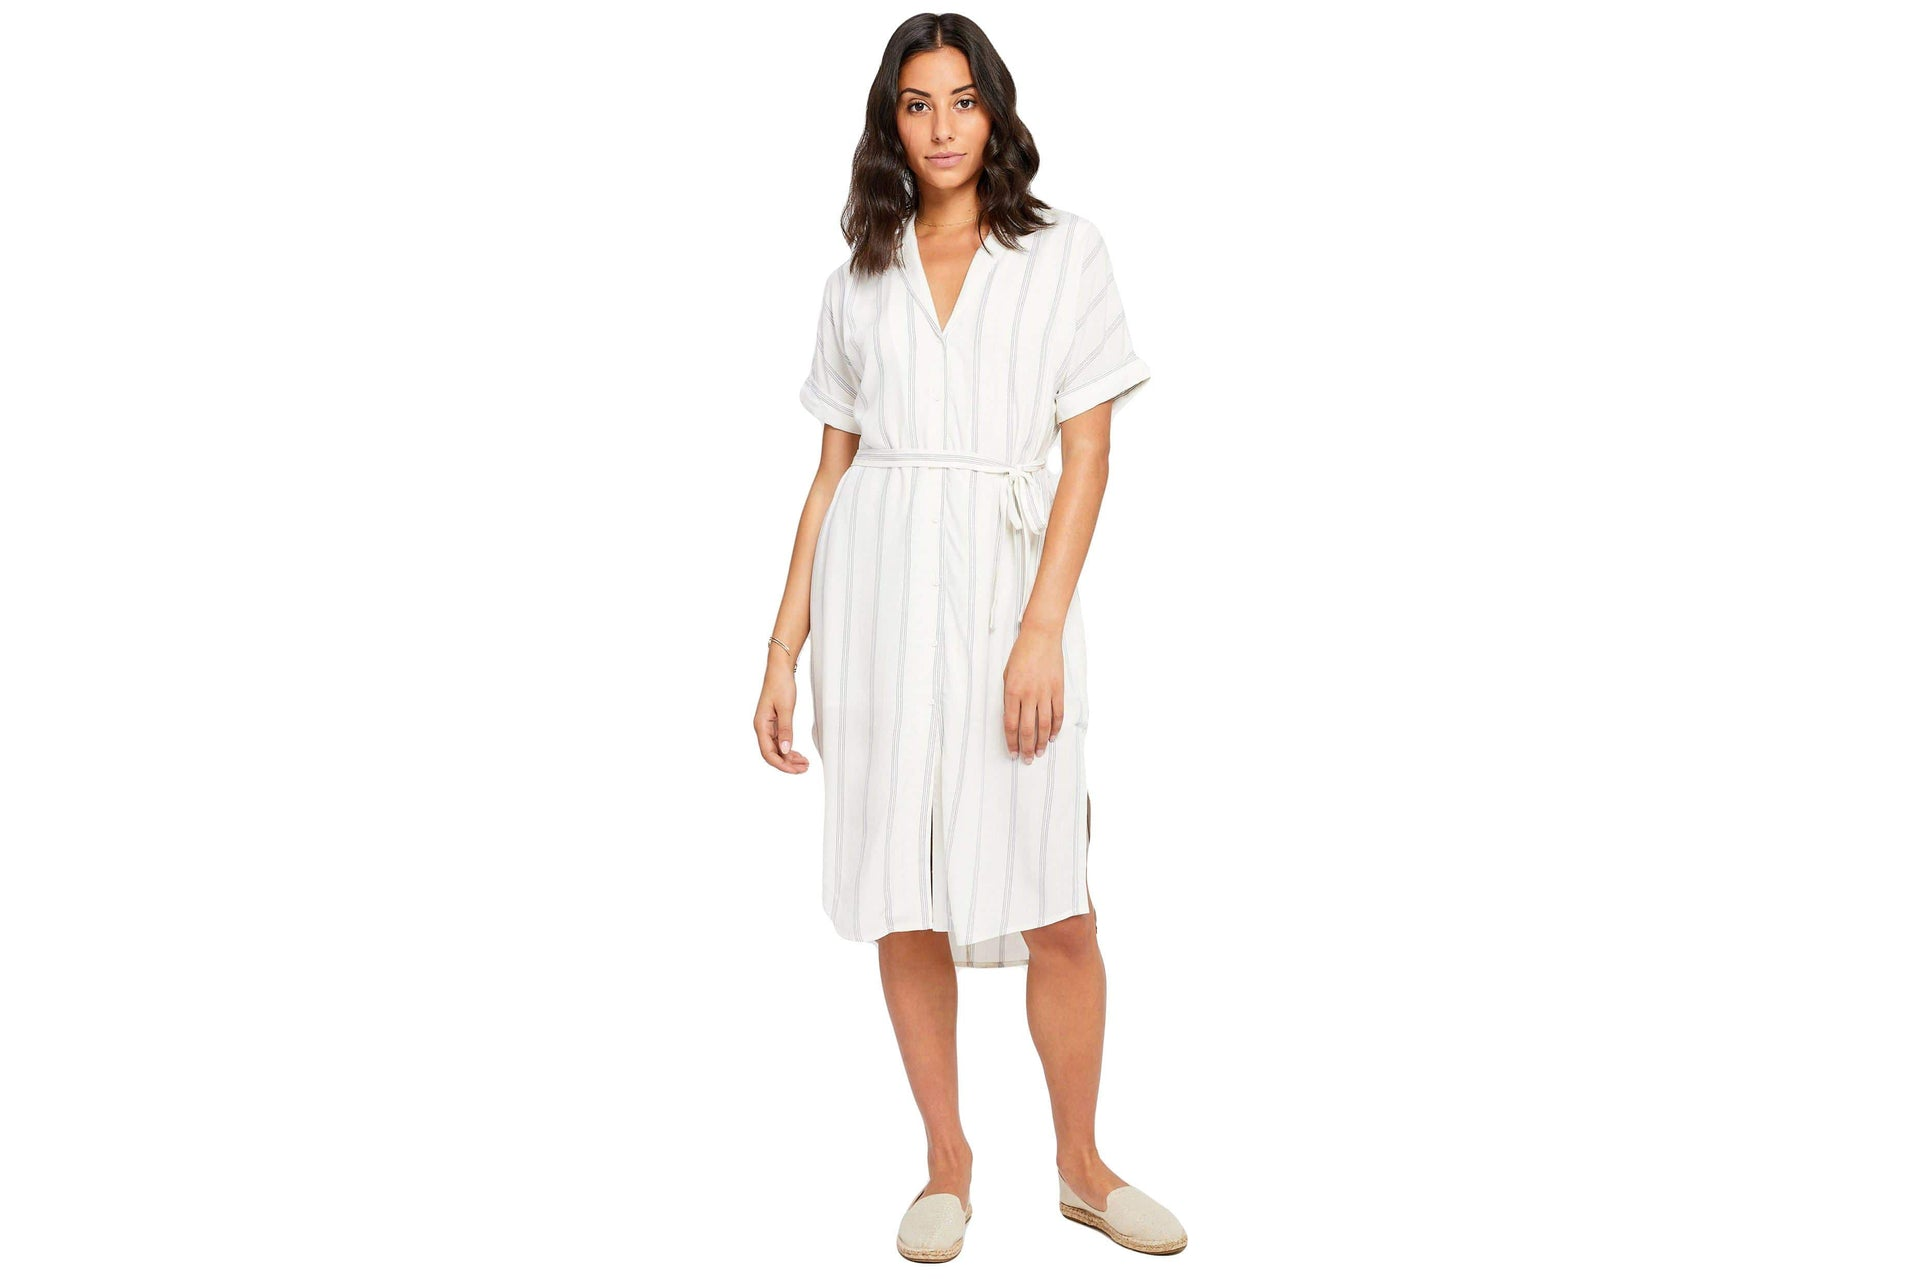 KAYSEY - GF190-8386 WOMENS SOFTGOODS GENTLEFAWN WHITE NOMAD STRIPE XS